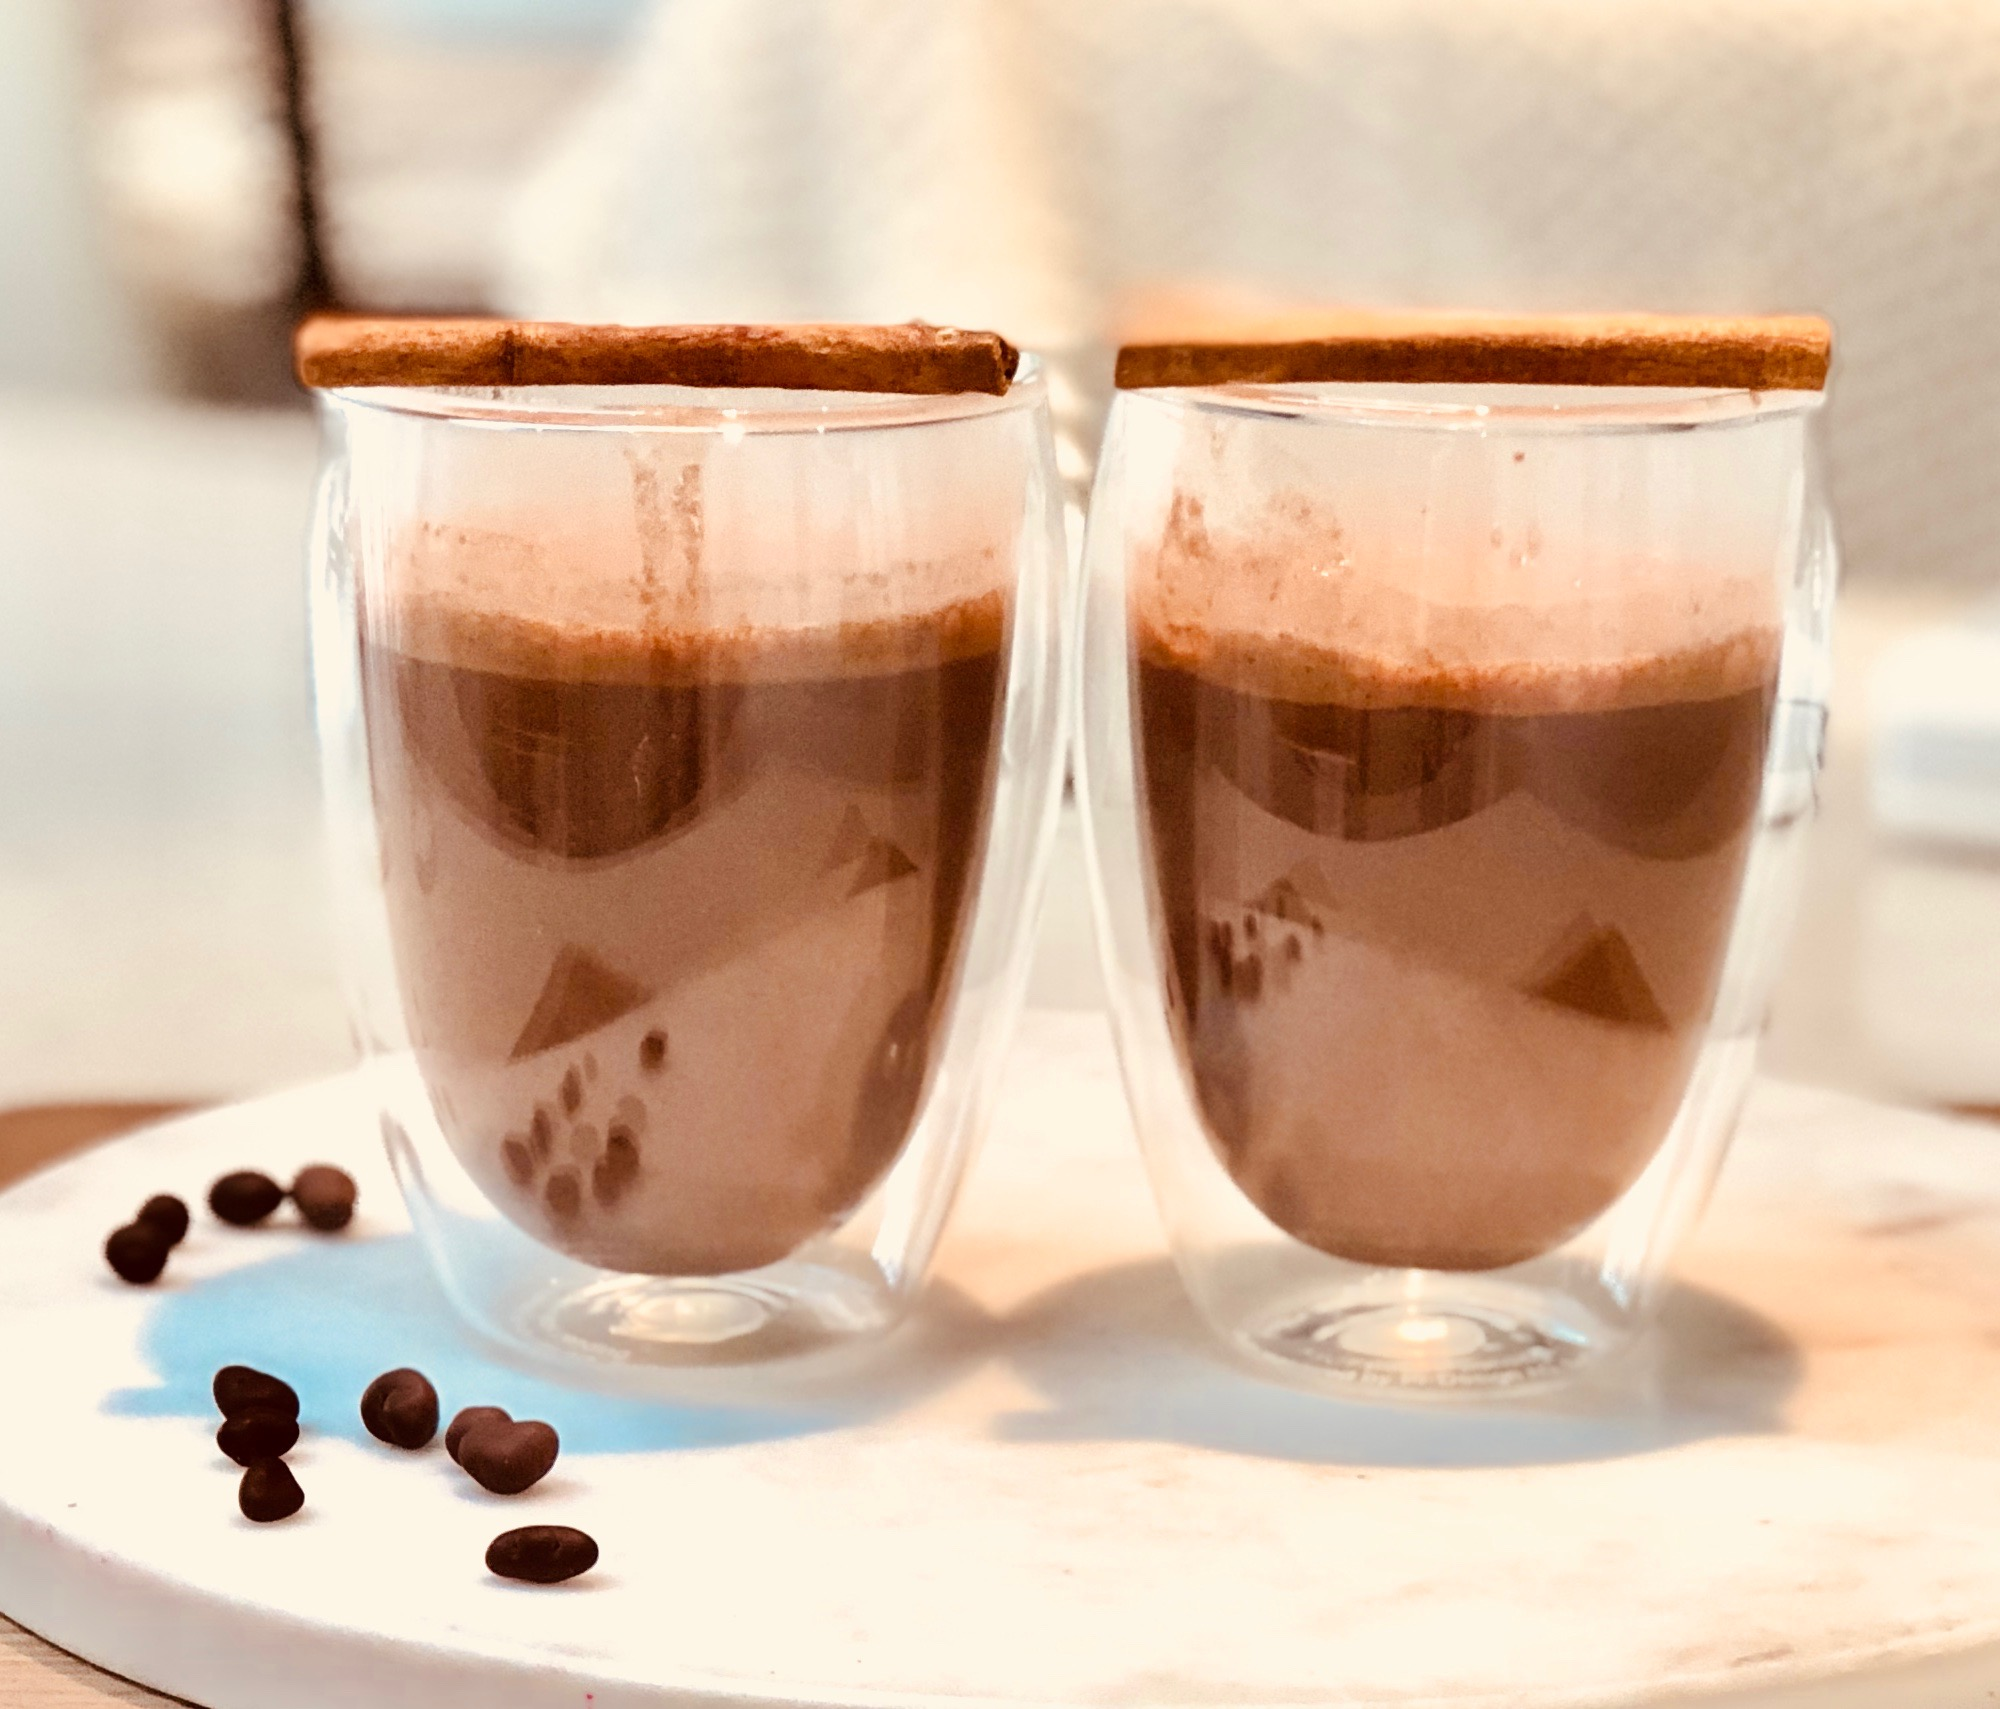 - Ingredients1 cup non-dairy milk of choice (when I'm not making my own which is SO easy that's for another post, I like @almondmilkco or @pureharvest if needing a supermarket UHT option) 1 tbs quality cacao (I like @loving_earth and @powersuperfoods)1 tsp carob½ tsp maca1 tbs collagen (I like @greatlakesgelatin or @thebeautychef ) ¼ tsp of cinnamon and ½ tsp ground vanilla/pure vanilla extract6 drops pure liquid stevia or unrefined sugar sweetener of choice eg maple syrup, mesquite, lucuma)Pinch sea salt1 cheeky tbs coconut or almond butterMethodBlend or whisk together and warm on stove until hot enough to drink.TIP: I just put this in the nutribullet and it was lovely and creamy!